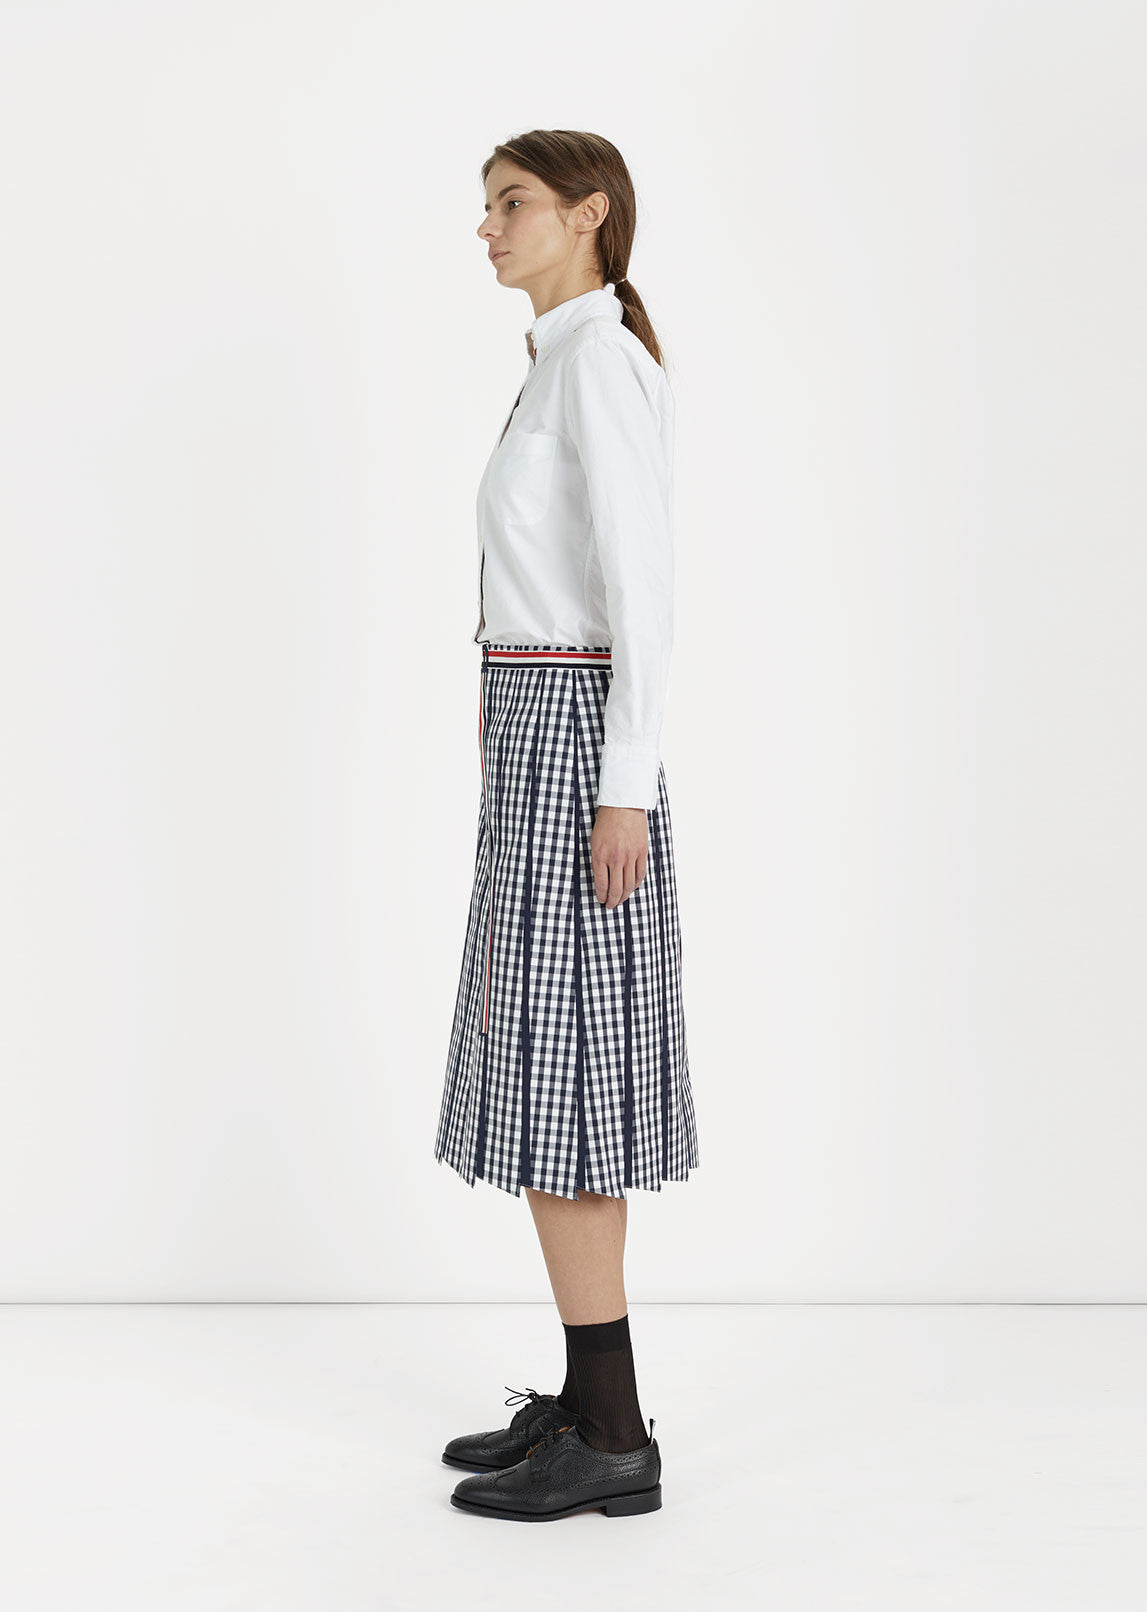 Trompe L'Oeil Pleated Skirt